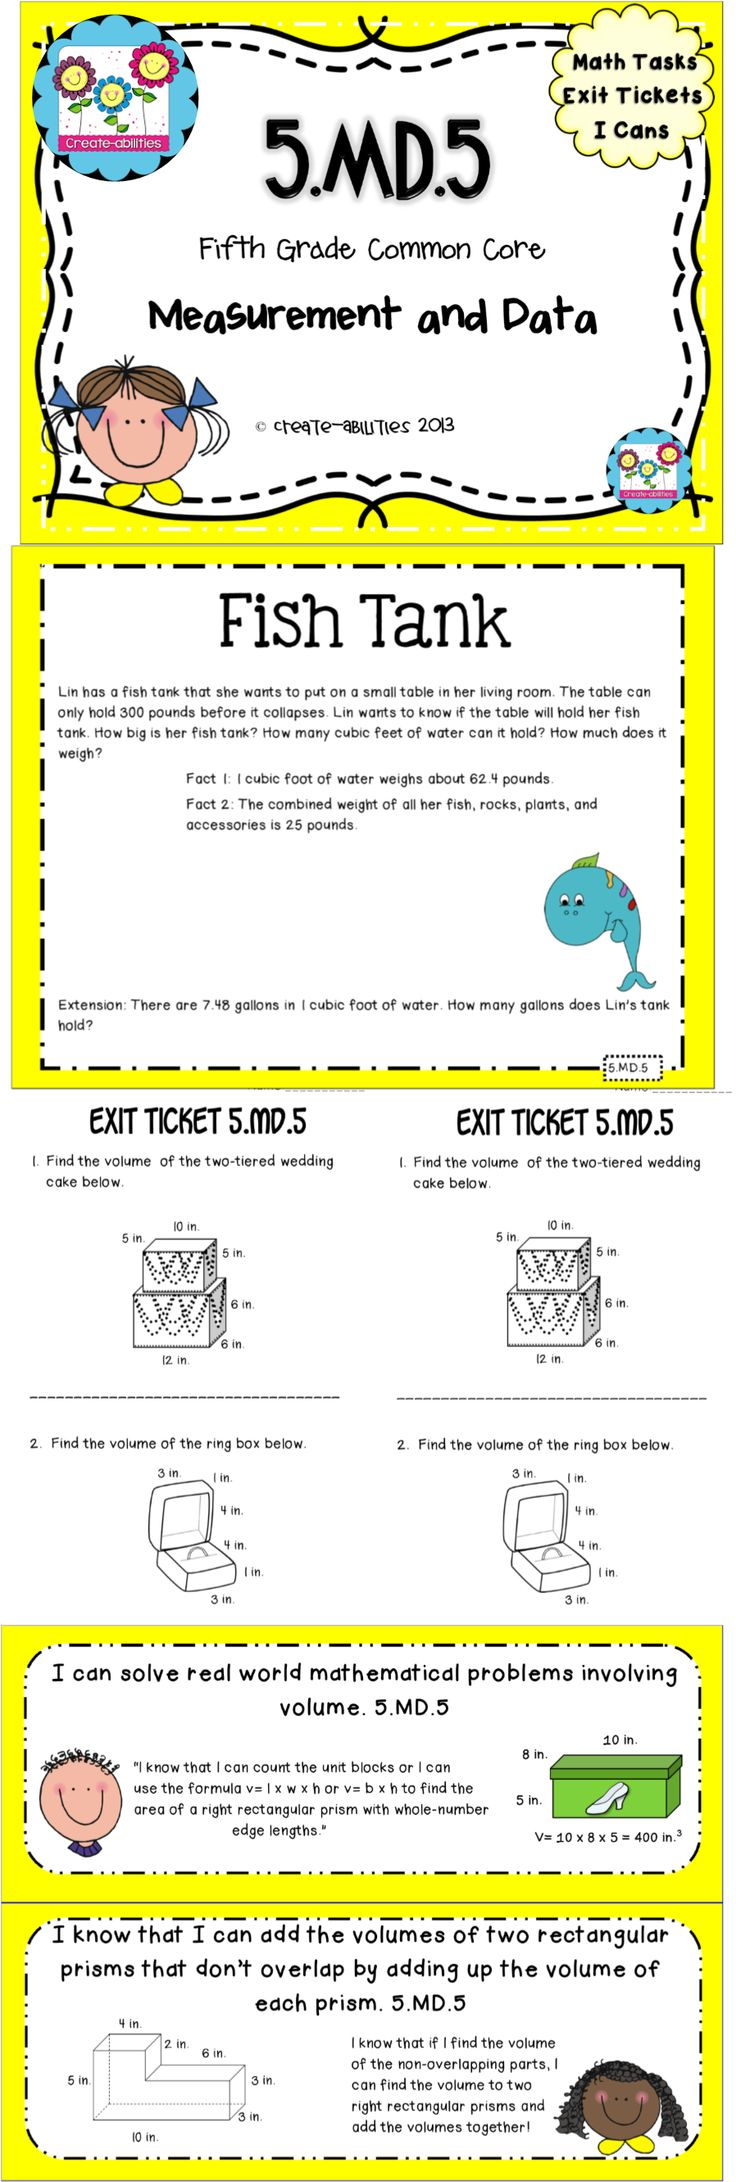 Common core math problems 5th grade worksheets